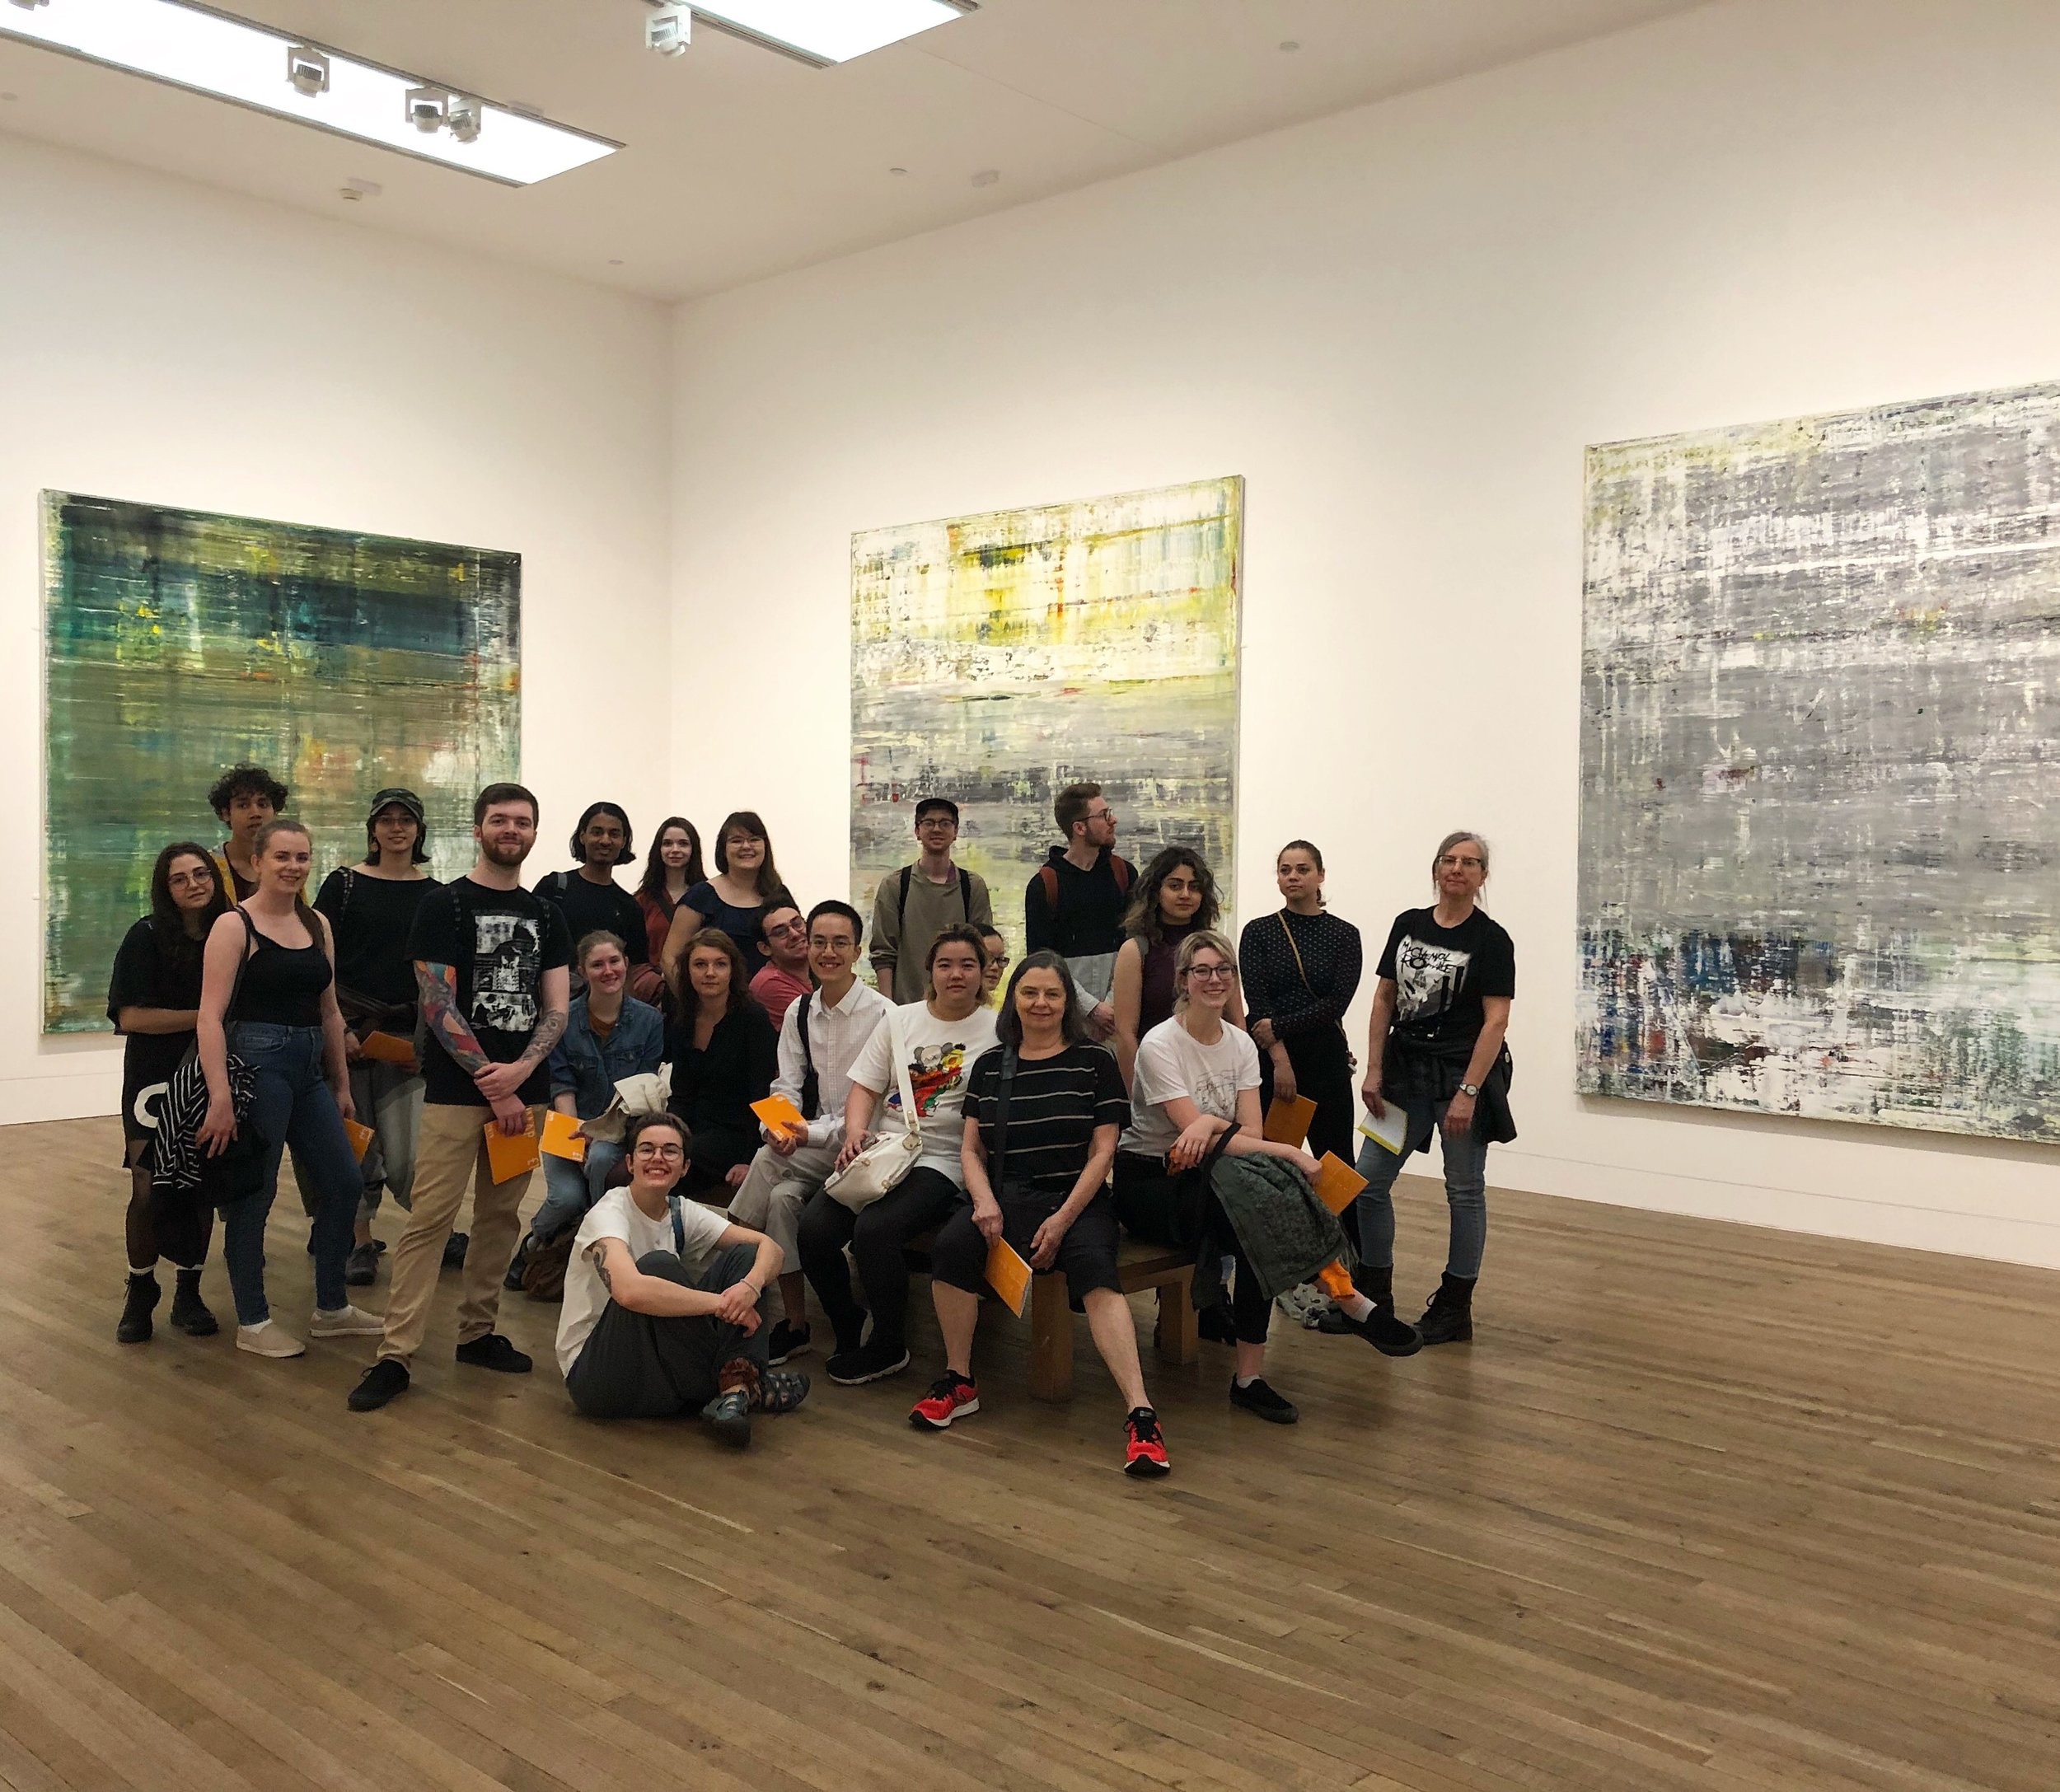 Elizabeth, fifth from right, posing with the group in the Gerhard Richter room at the Tate Modern